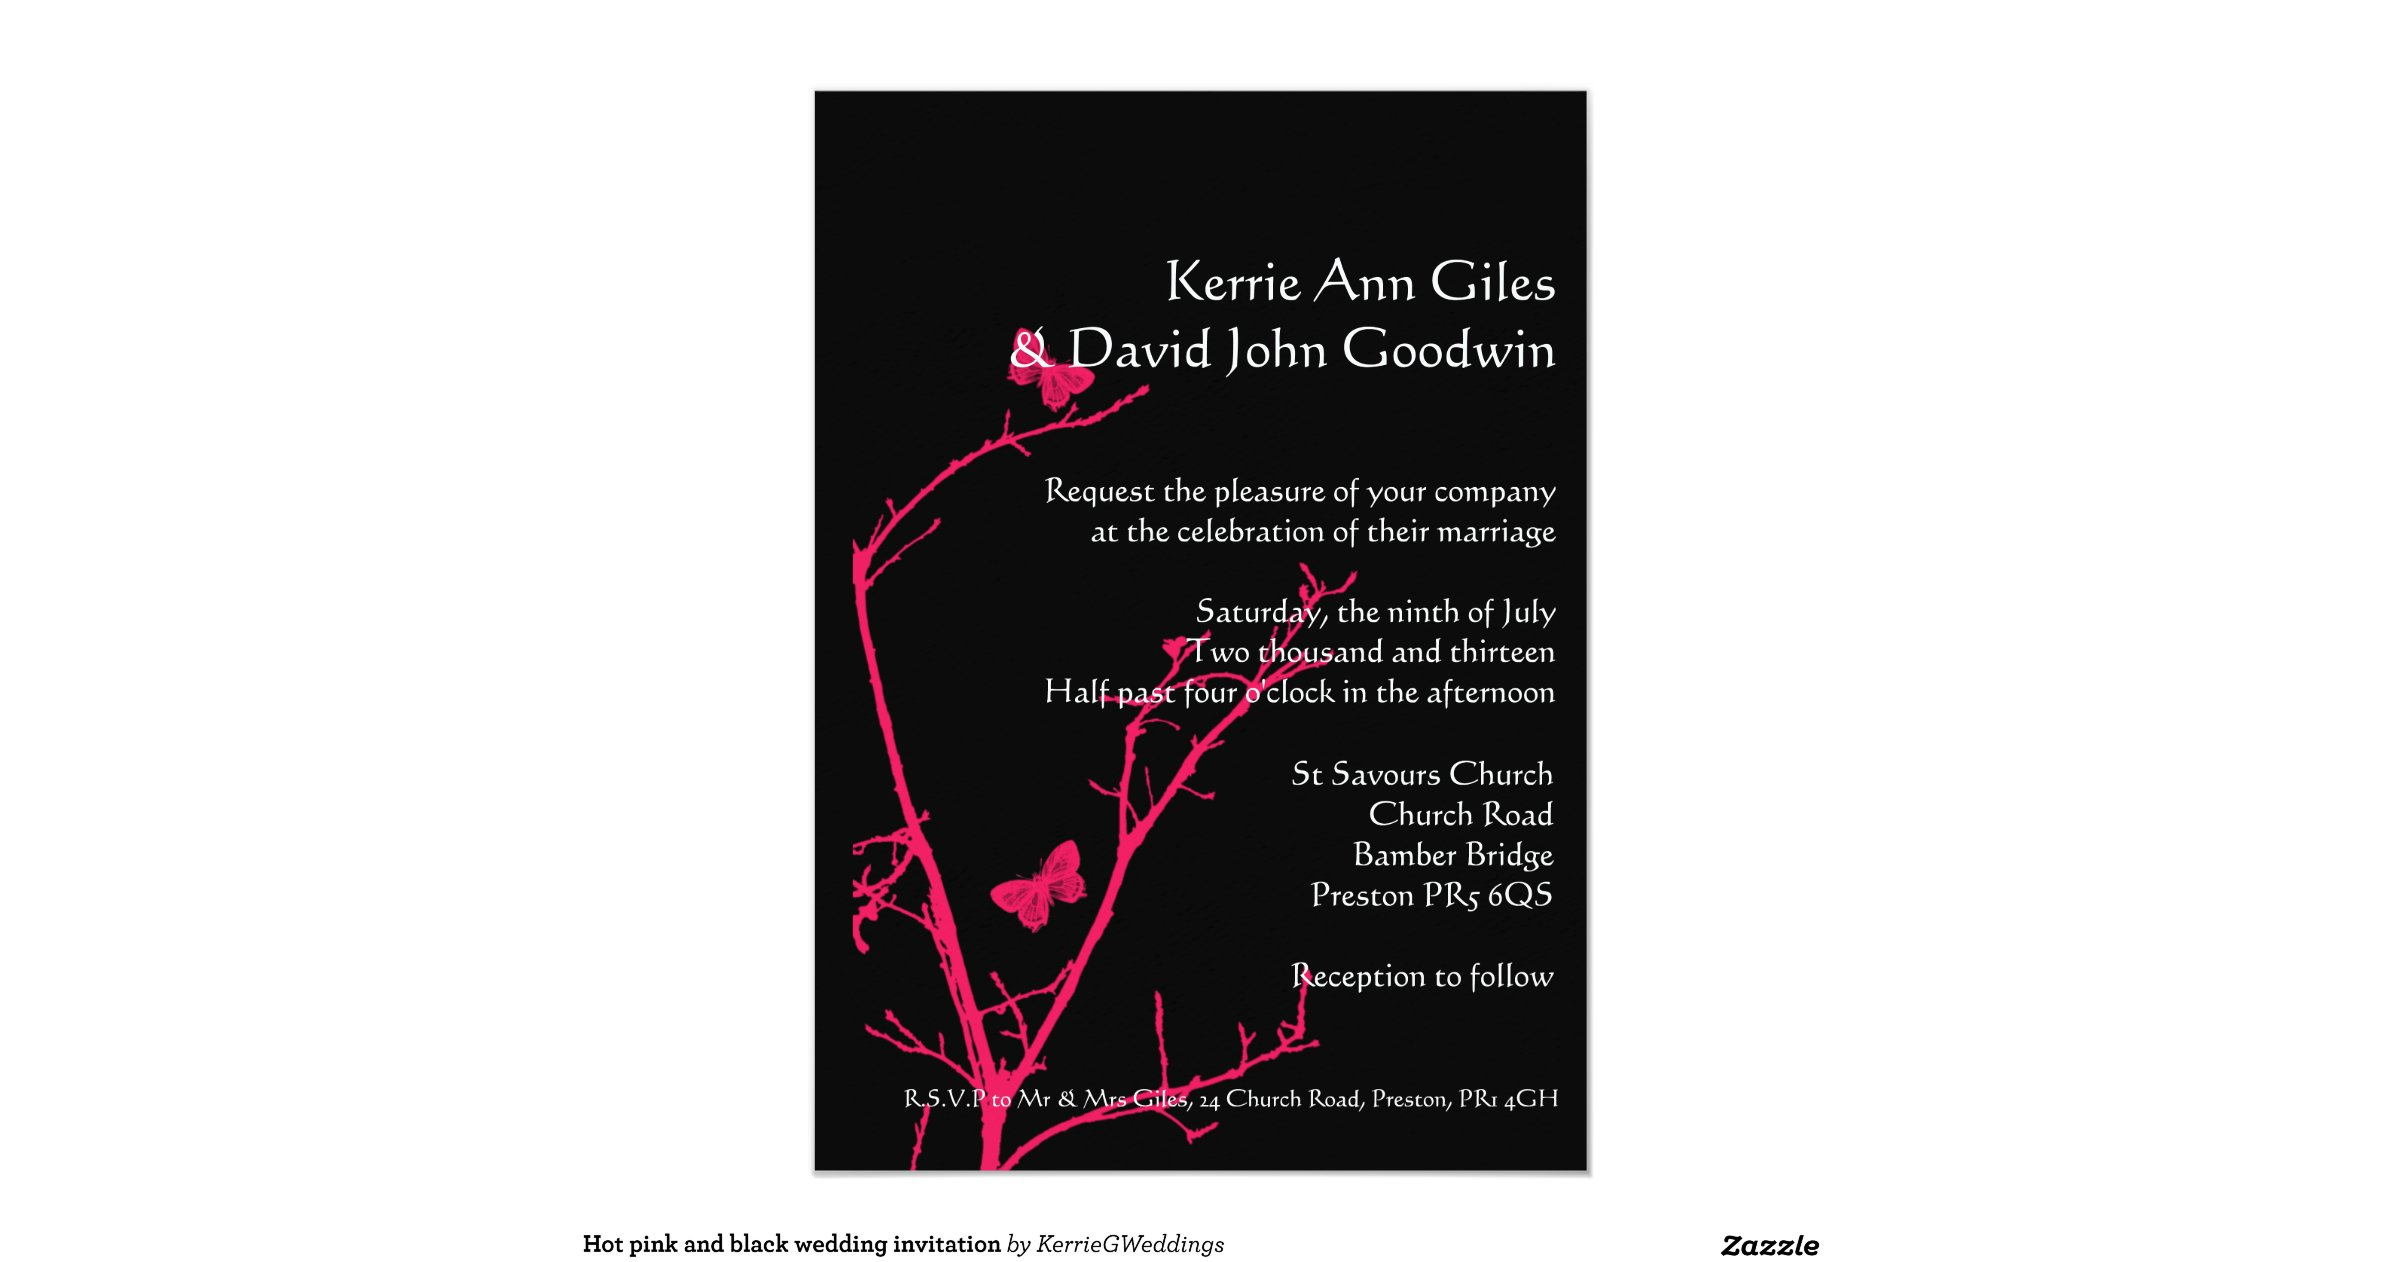 wedding invitation pink and black - 28 images - hot pink and black ...